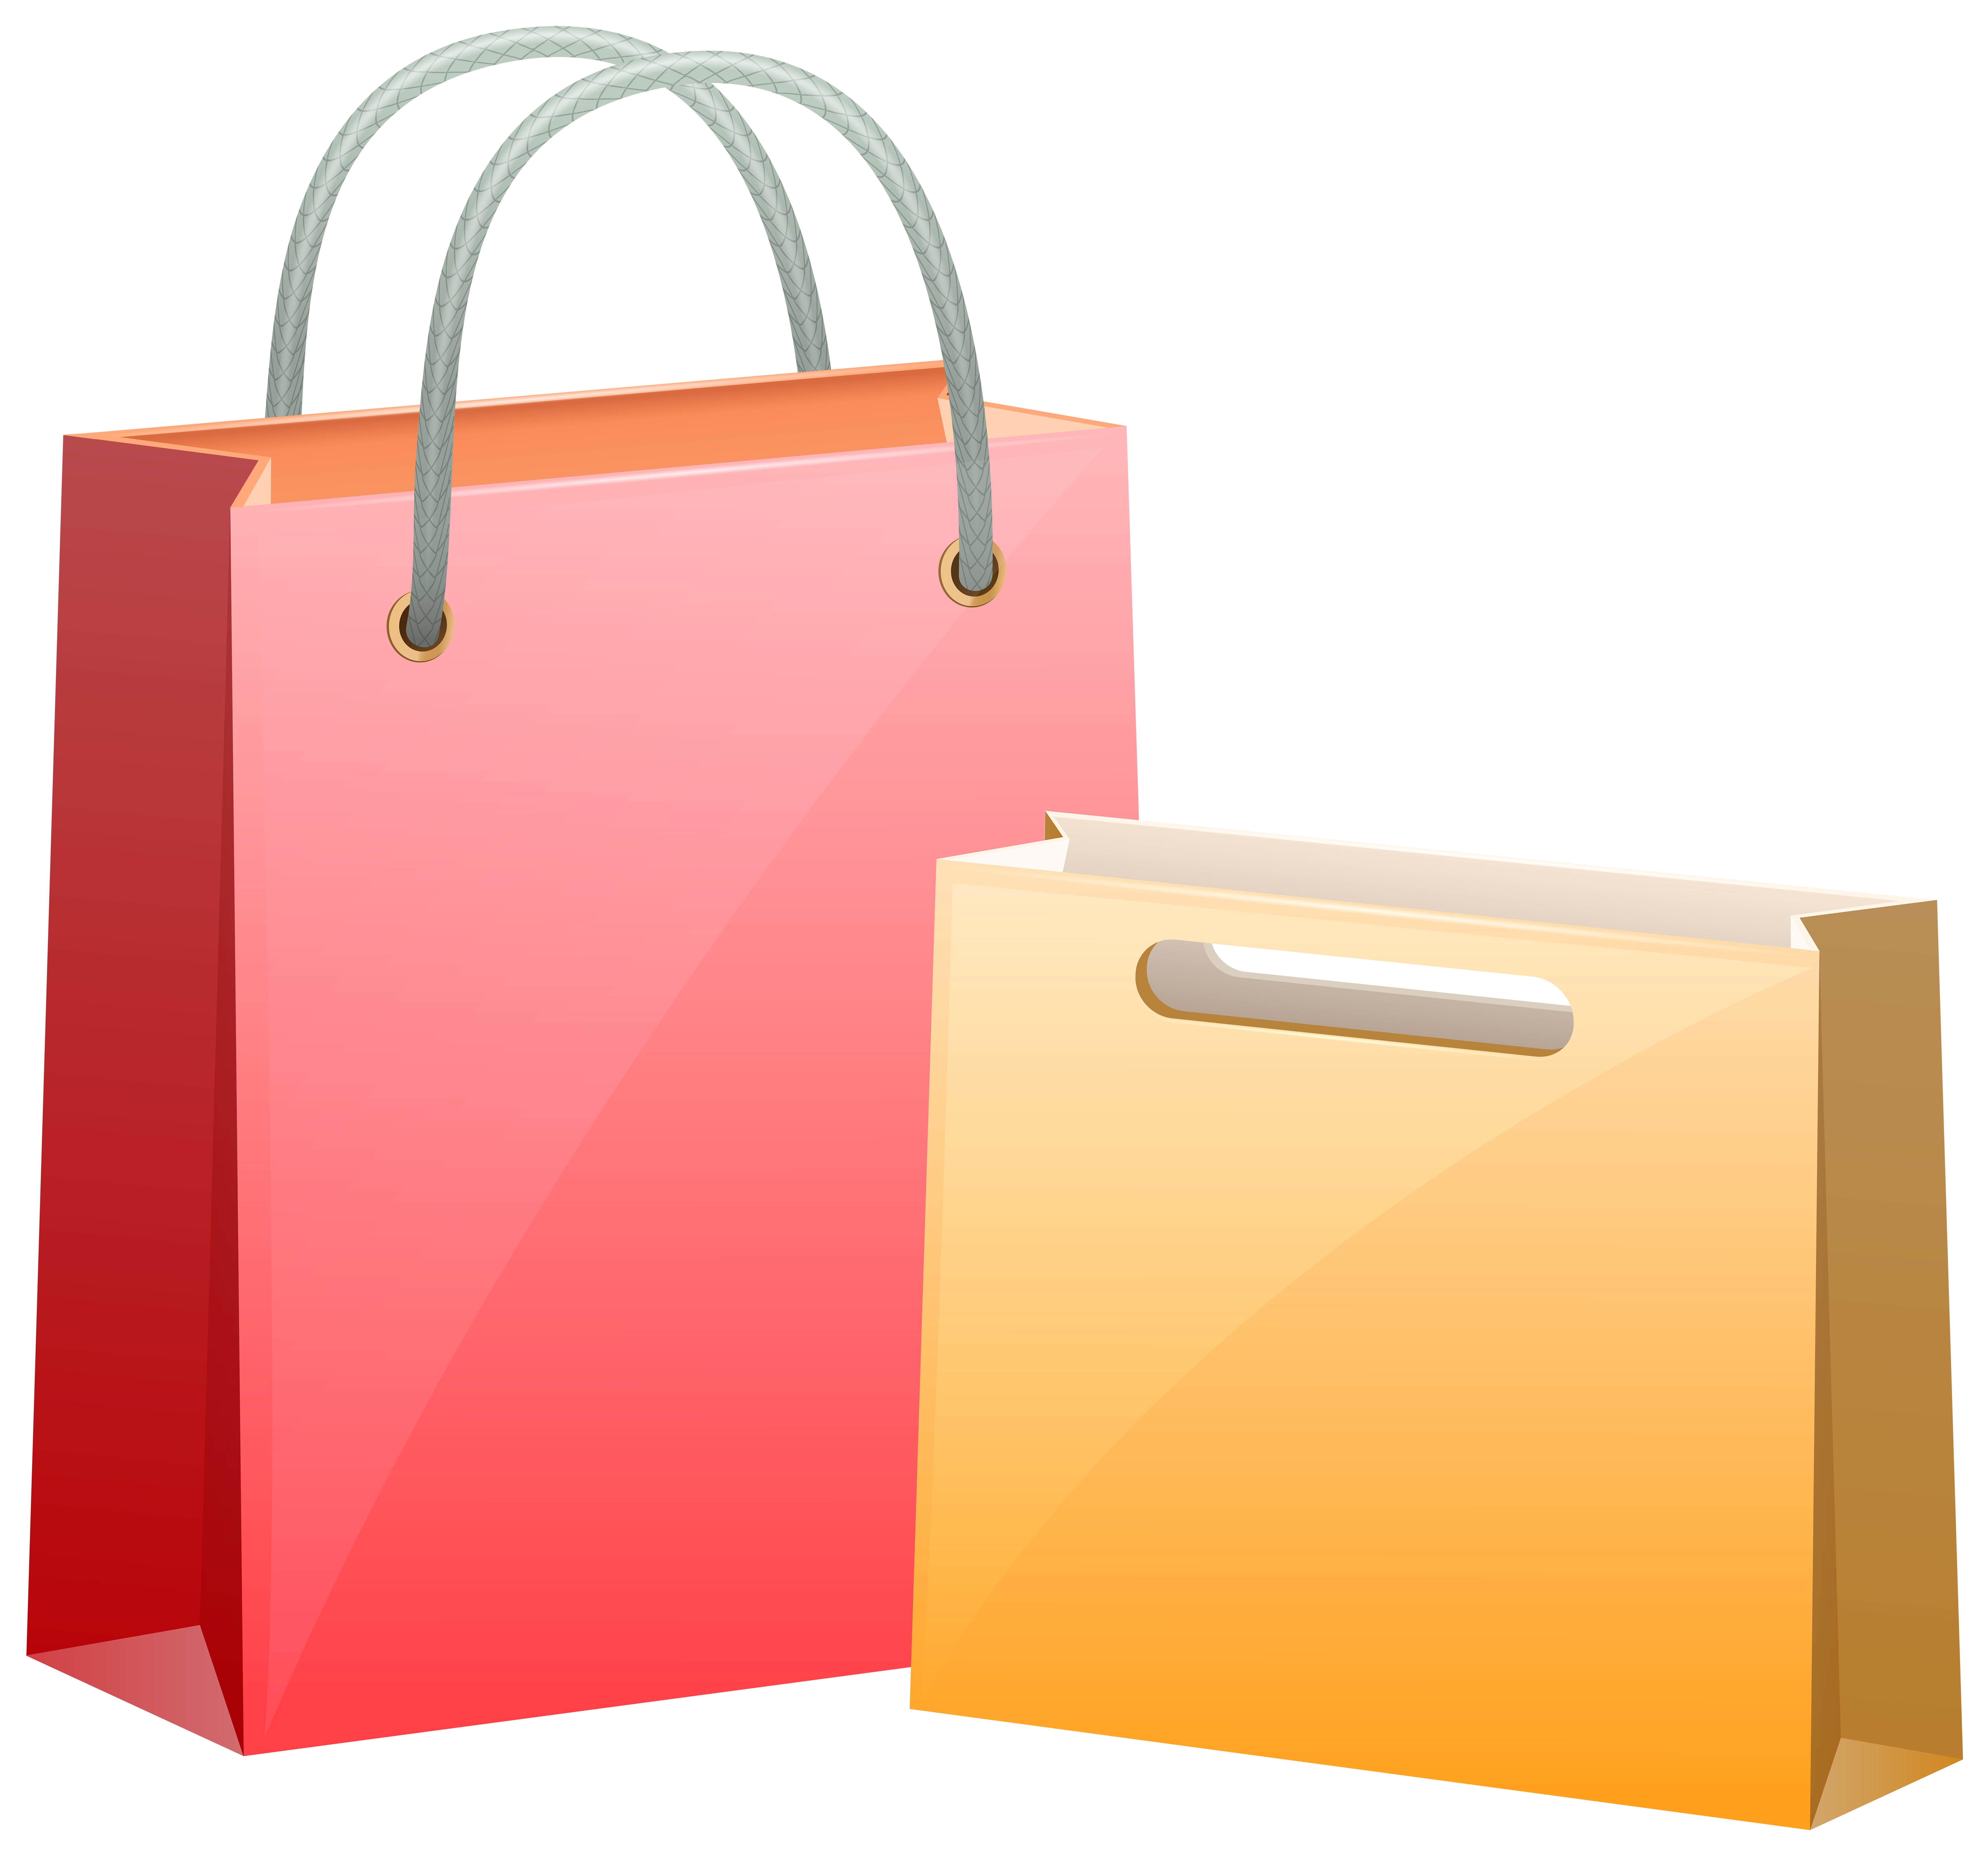 Bag of gifts clipart vector freeuse library Gift Bags PNG Clip Art - Best WEB Clipart vector freeuse library